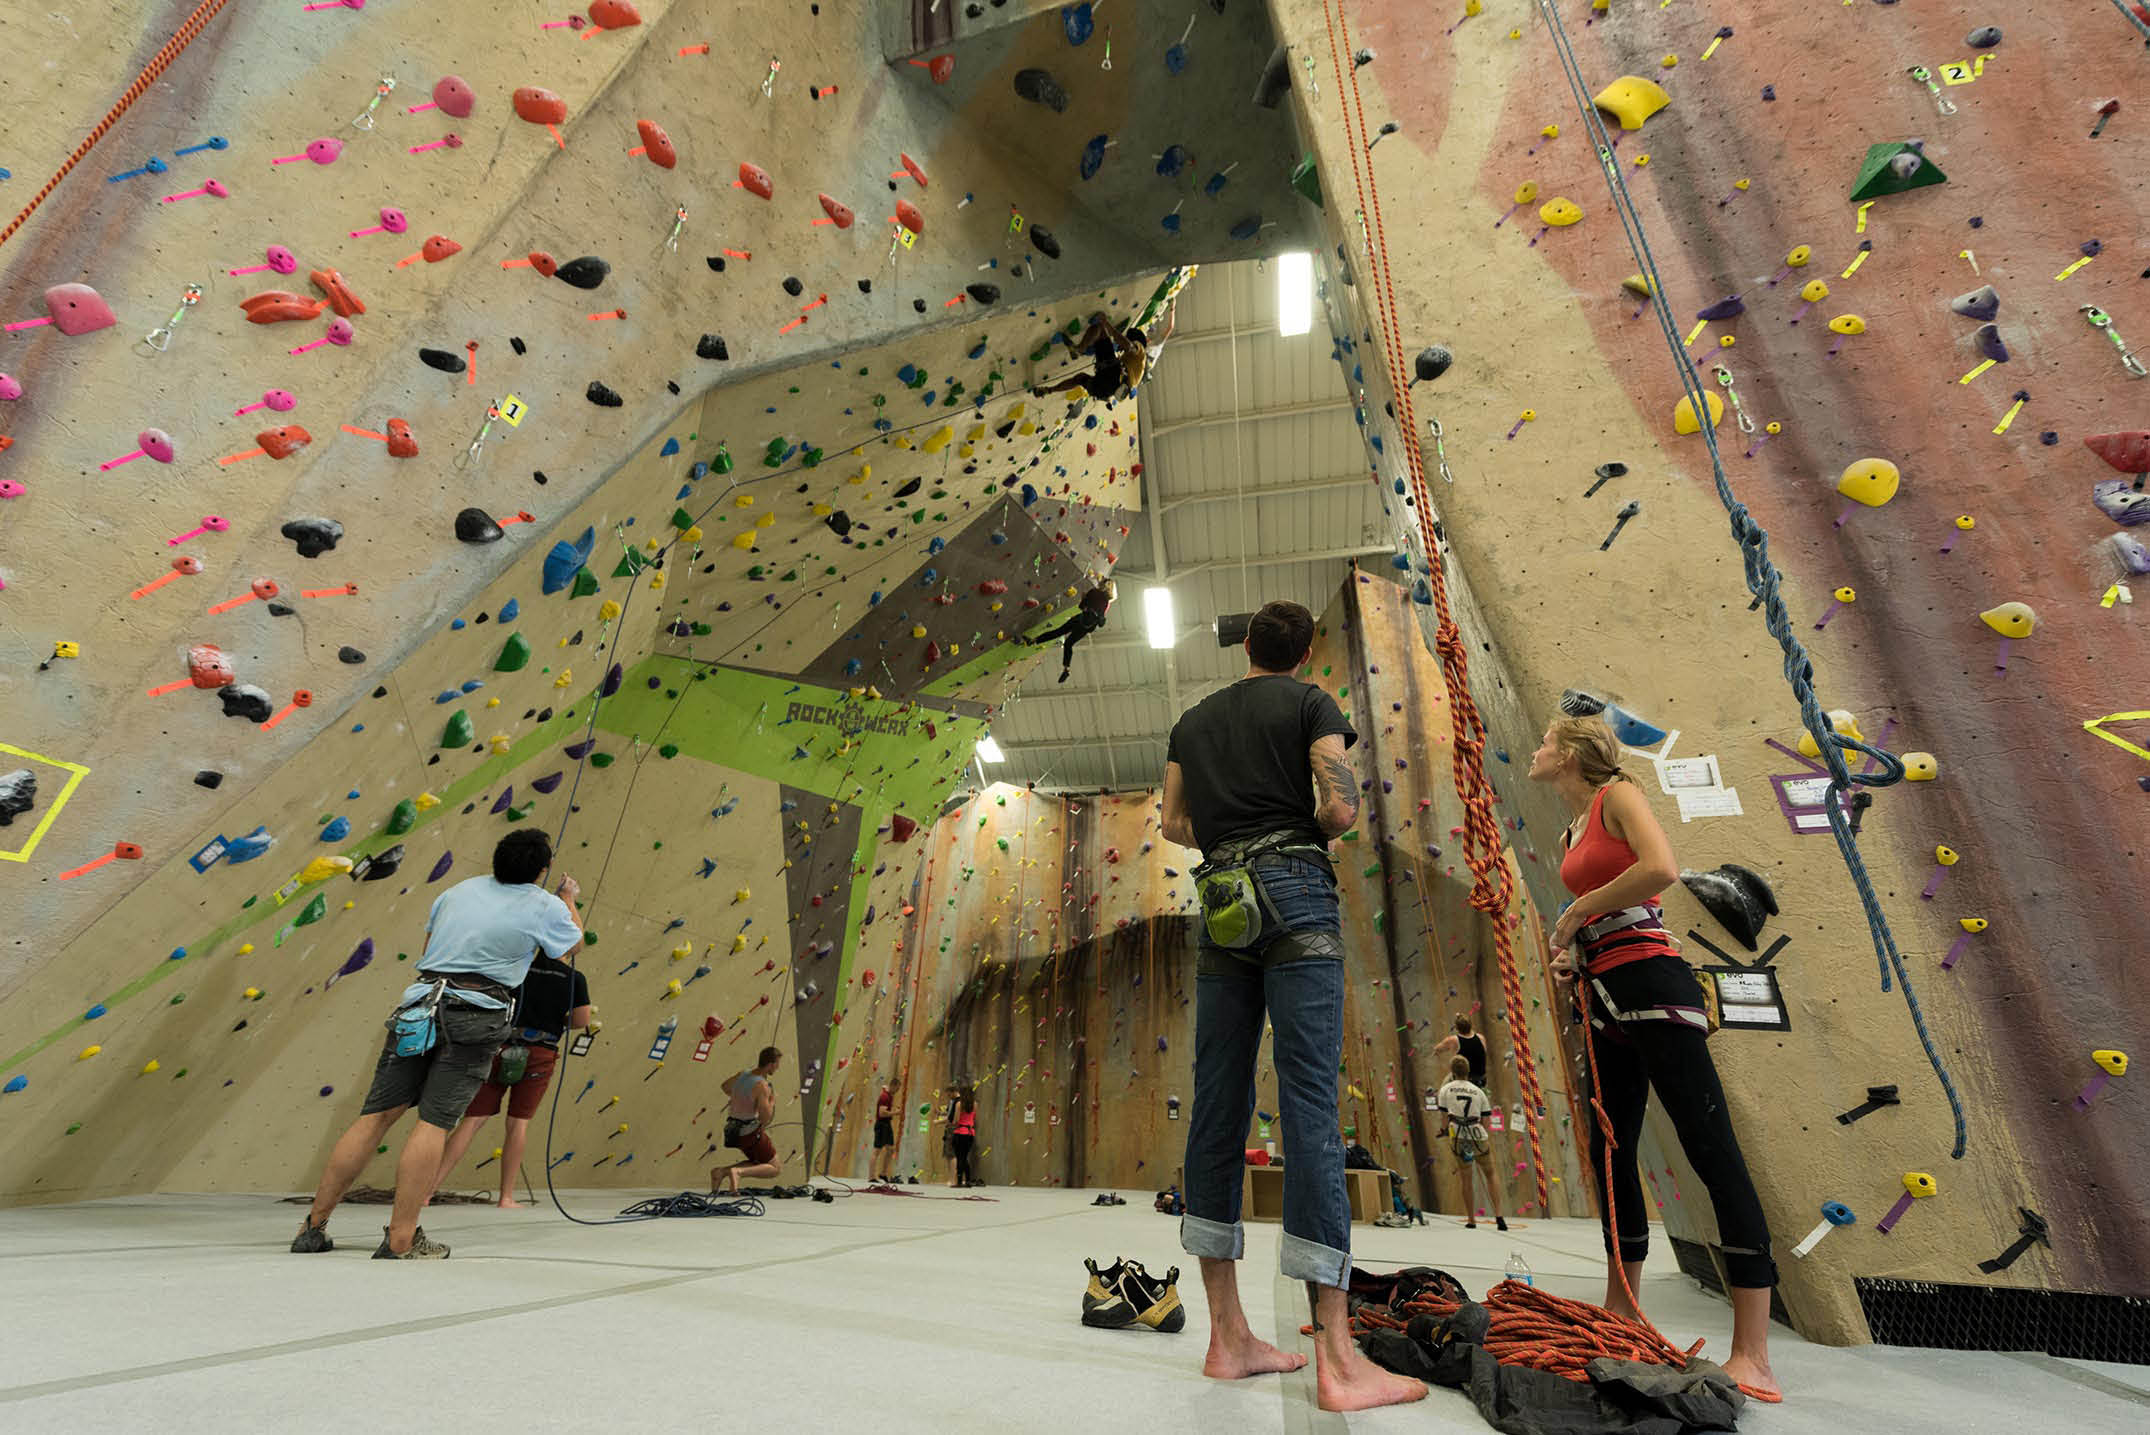 EPIC CLIMBING AND FITNESS, Indianapolis, IN